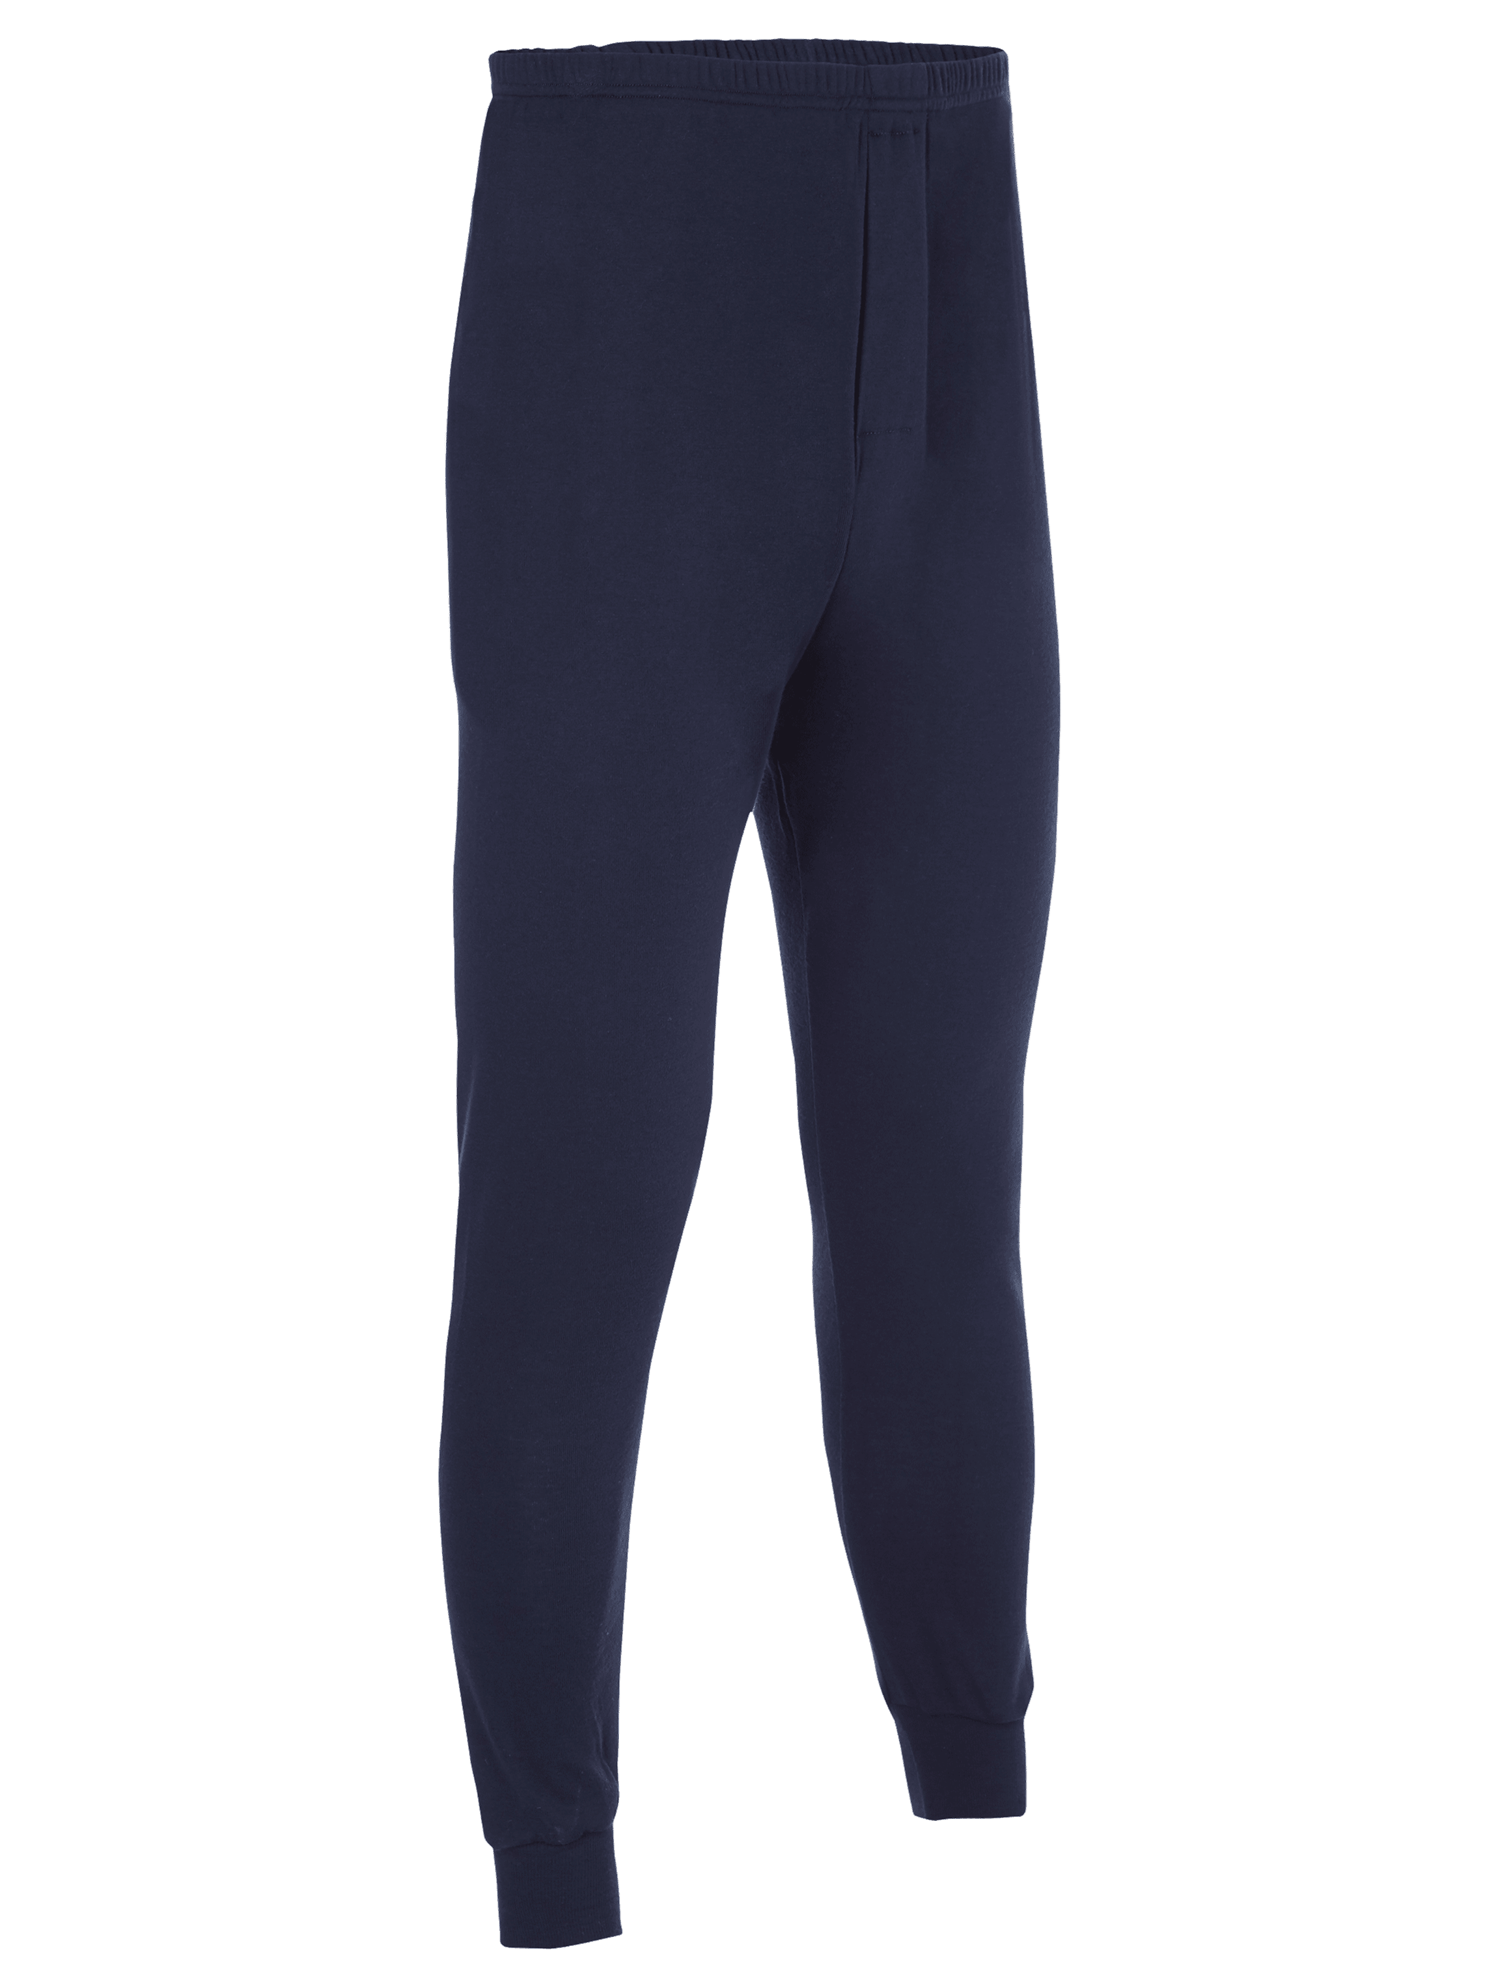 Picture of Protal® Long Johns - Navy